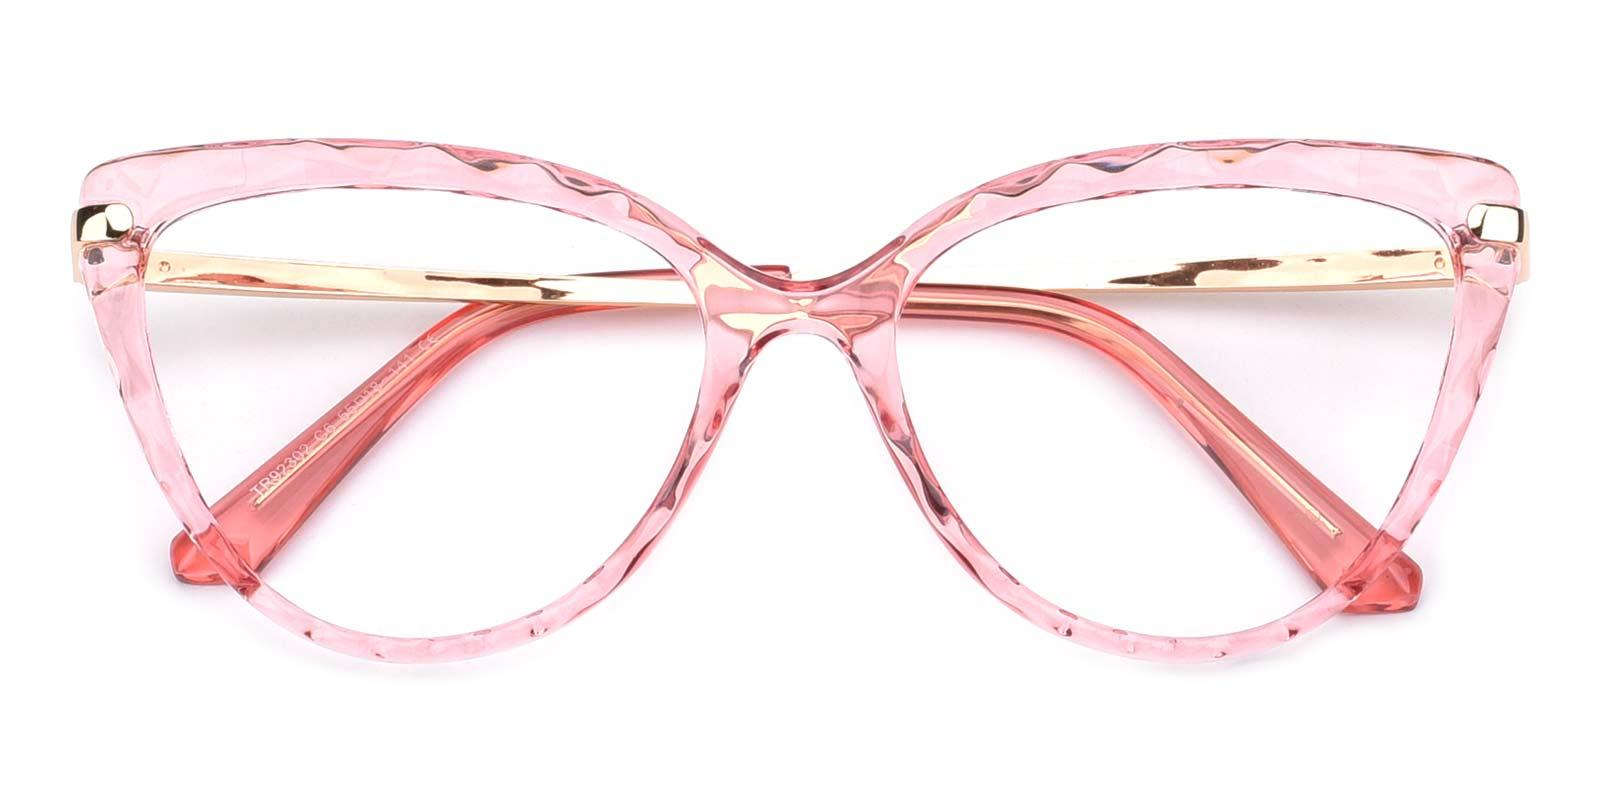 Truda-Pink-Cat-Combination-Eyeglasses-detail